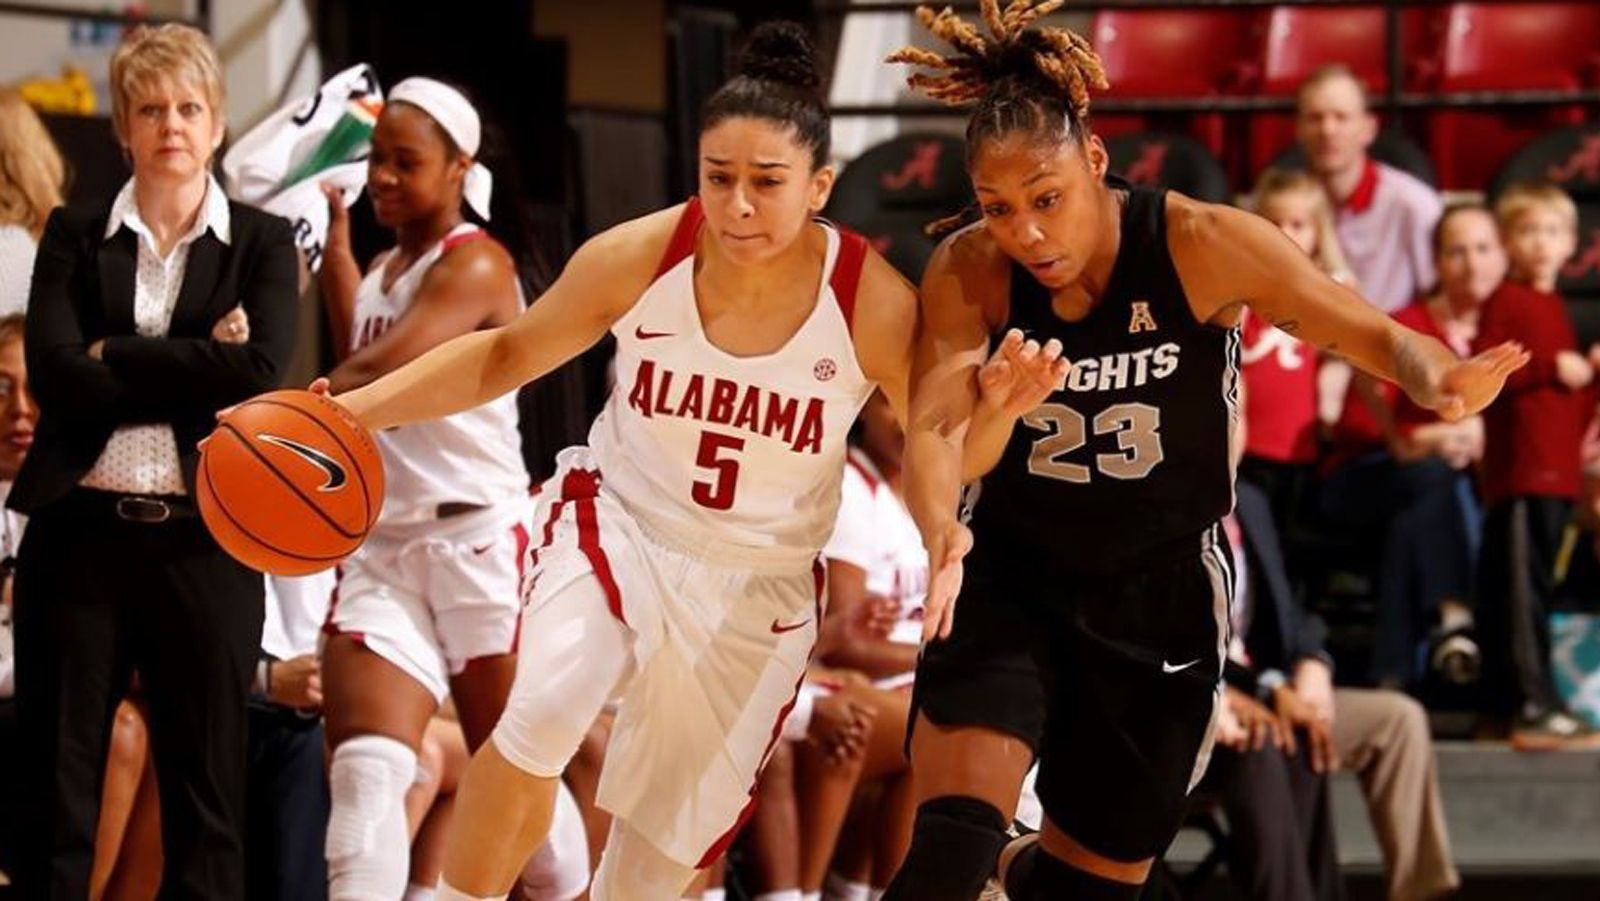 Alabama beats UCF 80-61 in second round of WNIT